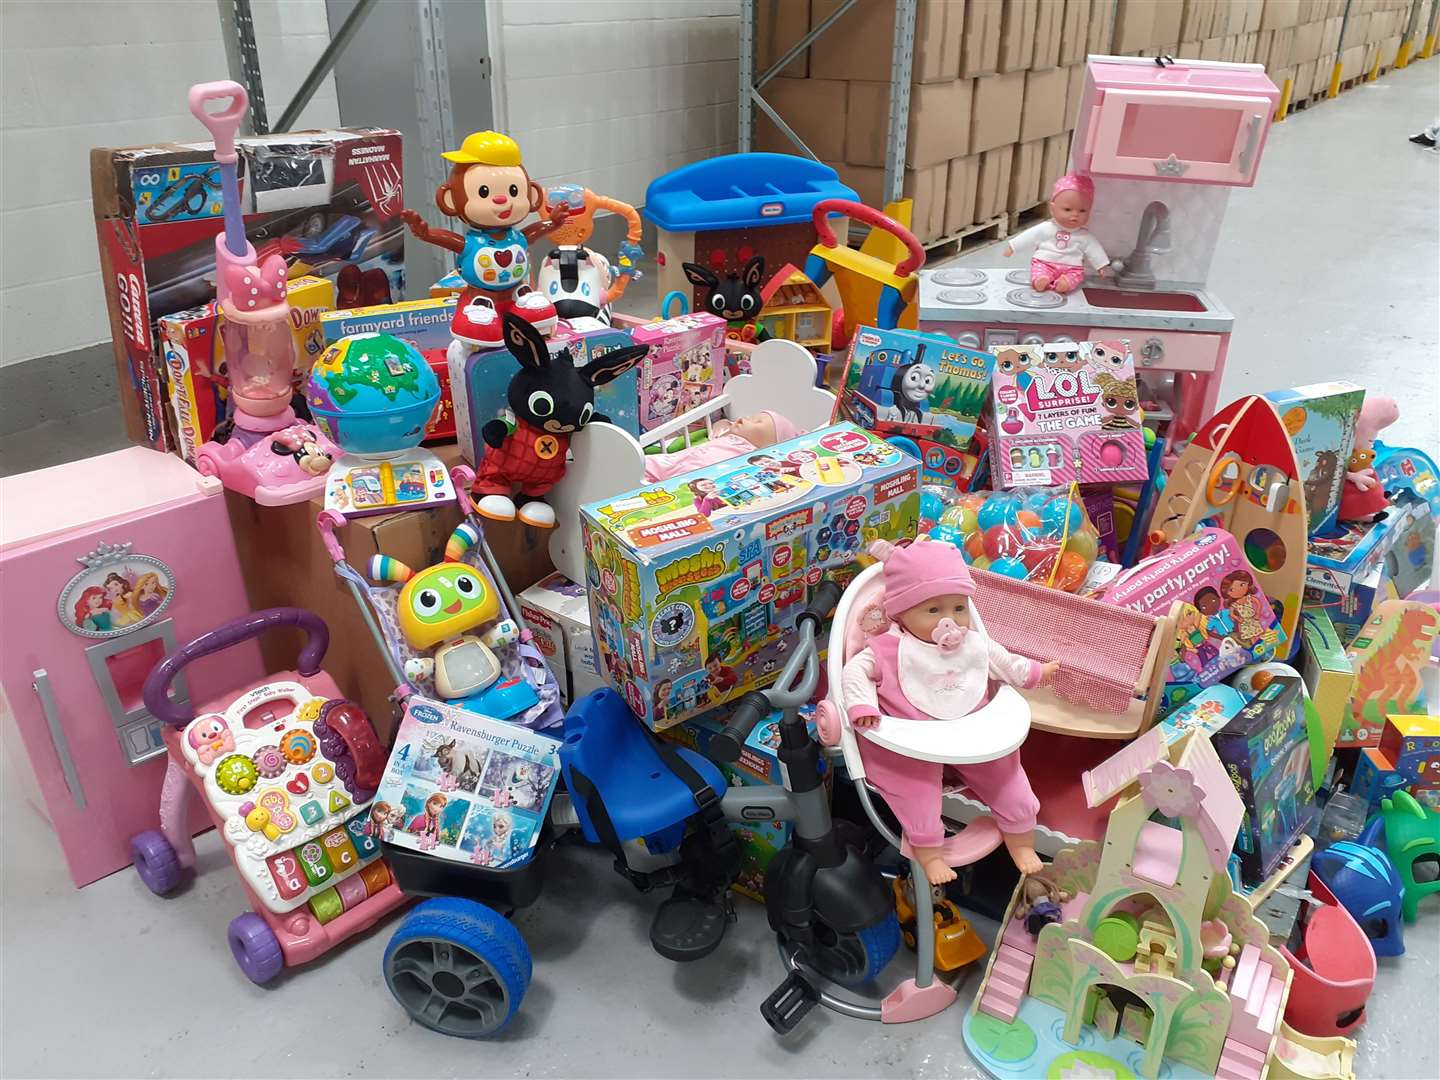 Unwanted toys collected by The Entertainer will be passed to The Salvation Army